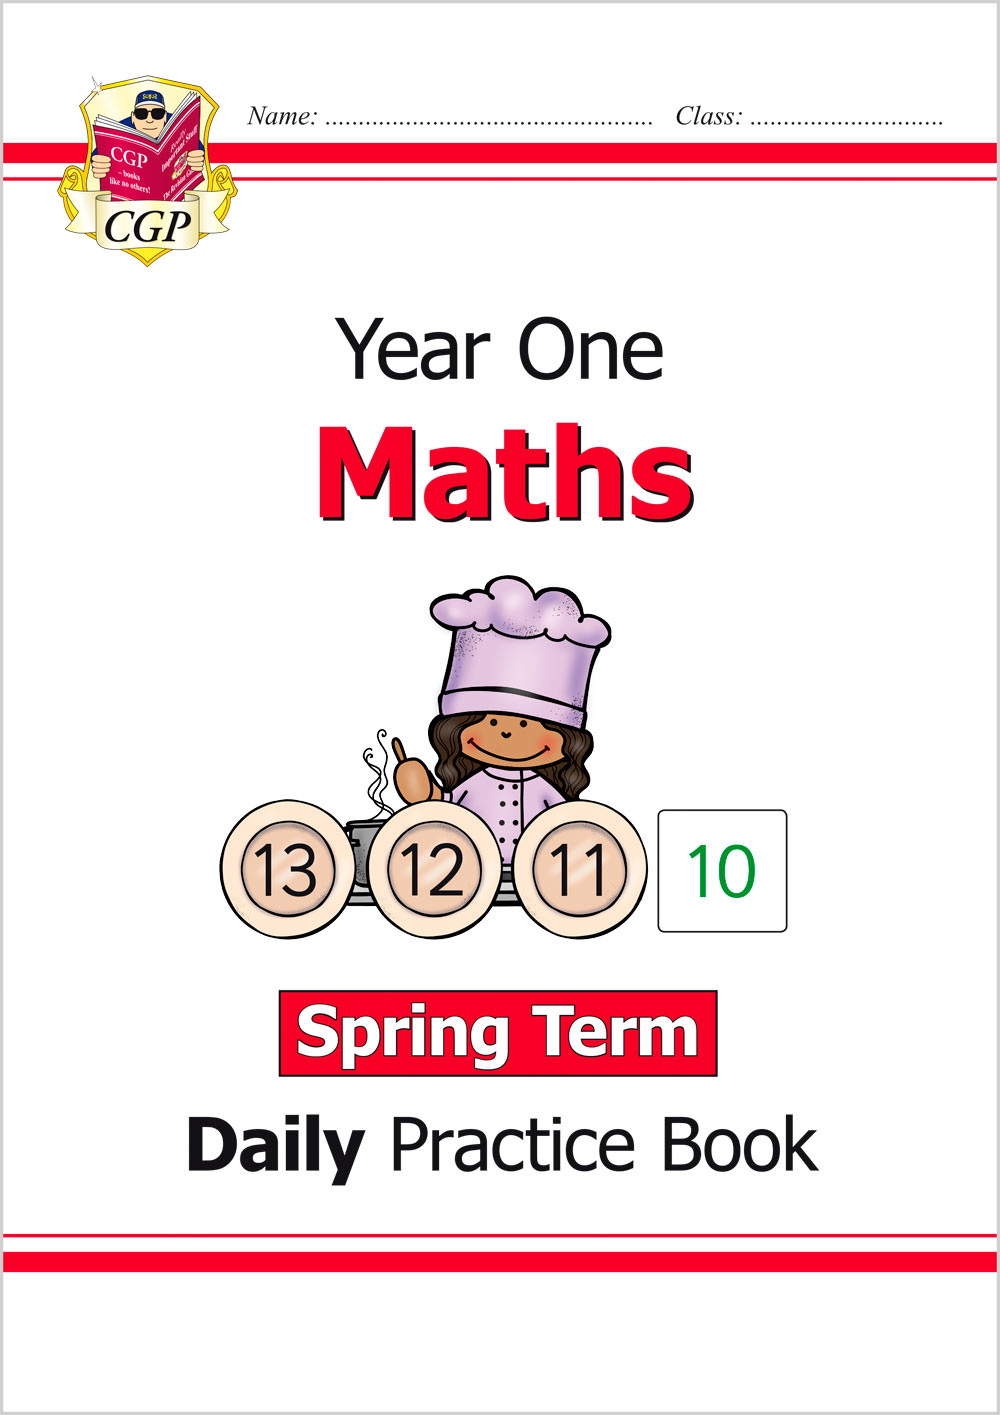 M1WSP11 - New KS1 Maths Daily Practice Book: Year 1 - Spring Term